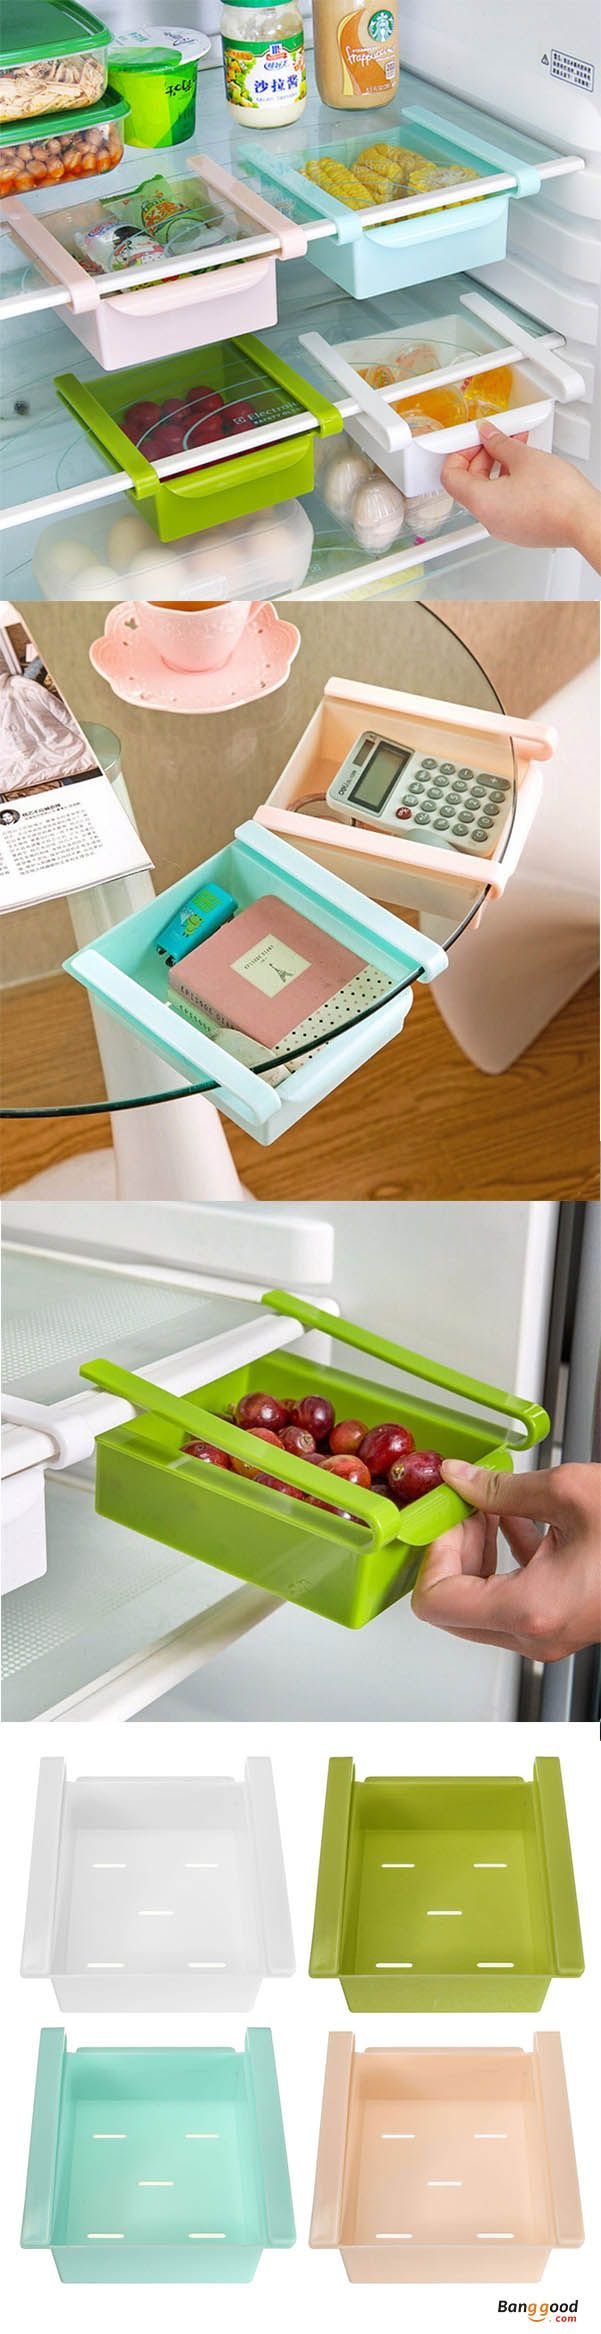 US$6.47 + Free shipping. Honana Plastic Kitchen Refrigerator Fridge Storage Rack Freezer Shelf Holder Kitchen Organization. Ideal for organizing food, drinks, fruits, etc, which makes it suitable for use under tables or refrigerator shelves.  Shop now!